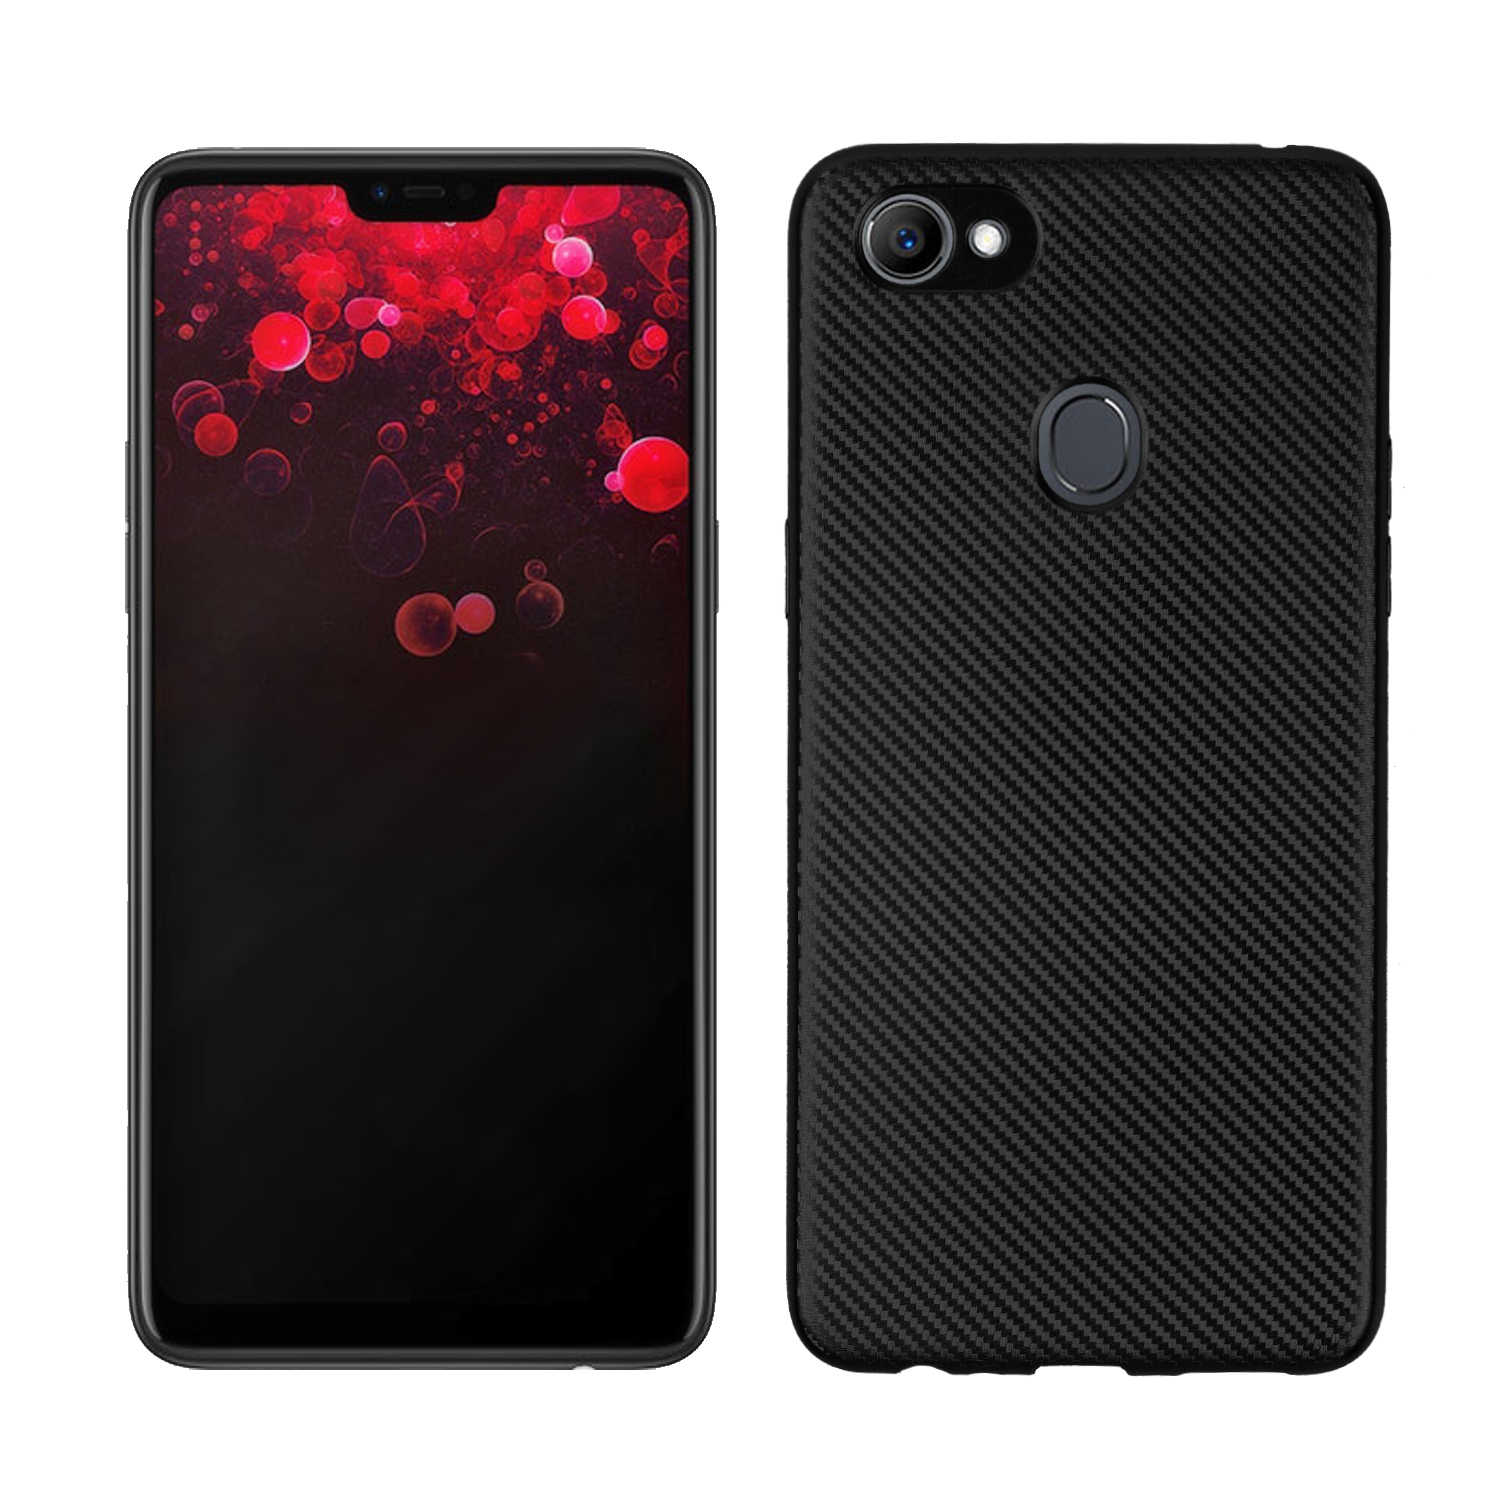 official photos 8c2f9 3a8a0 For OPPO F7 Case Classic Carbon Fiber Texture TPU Rubber Silicone  Protective Cover Soft Back Single Shell Phone Mobile Skin Bag